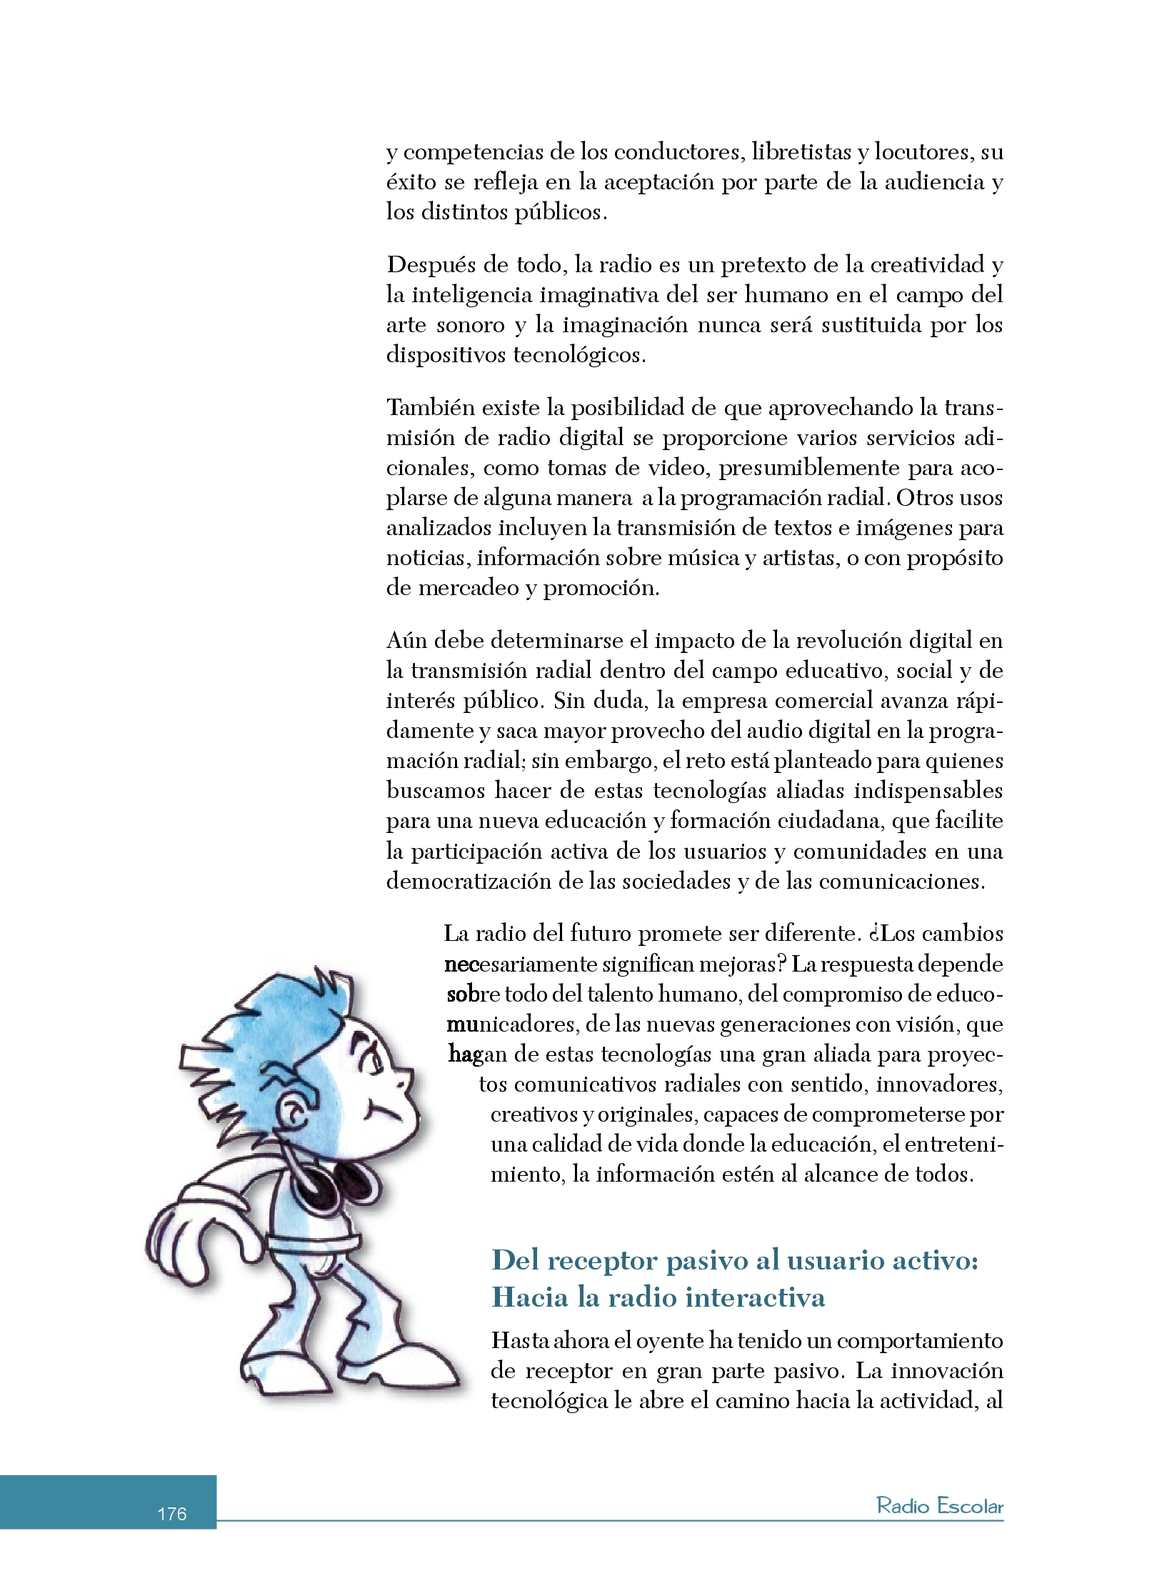 Page 178